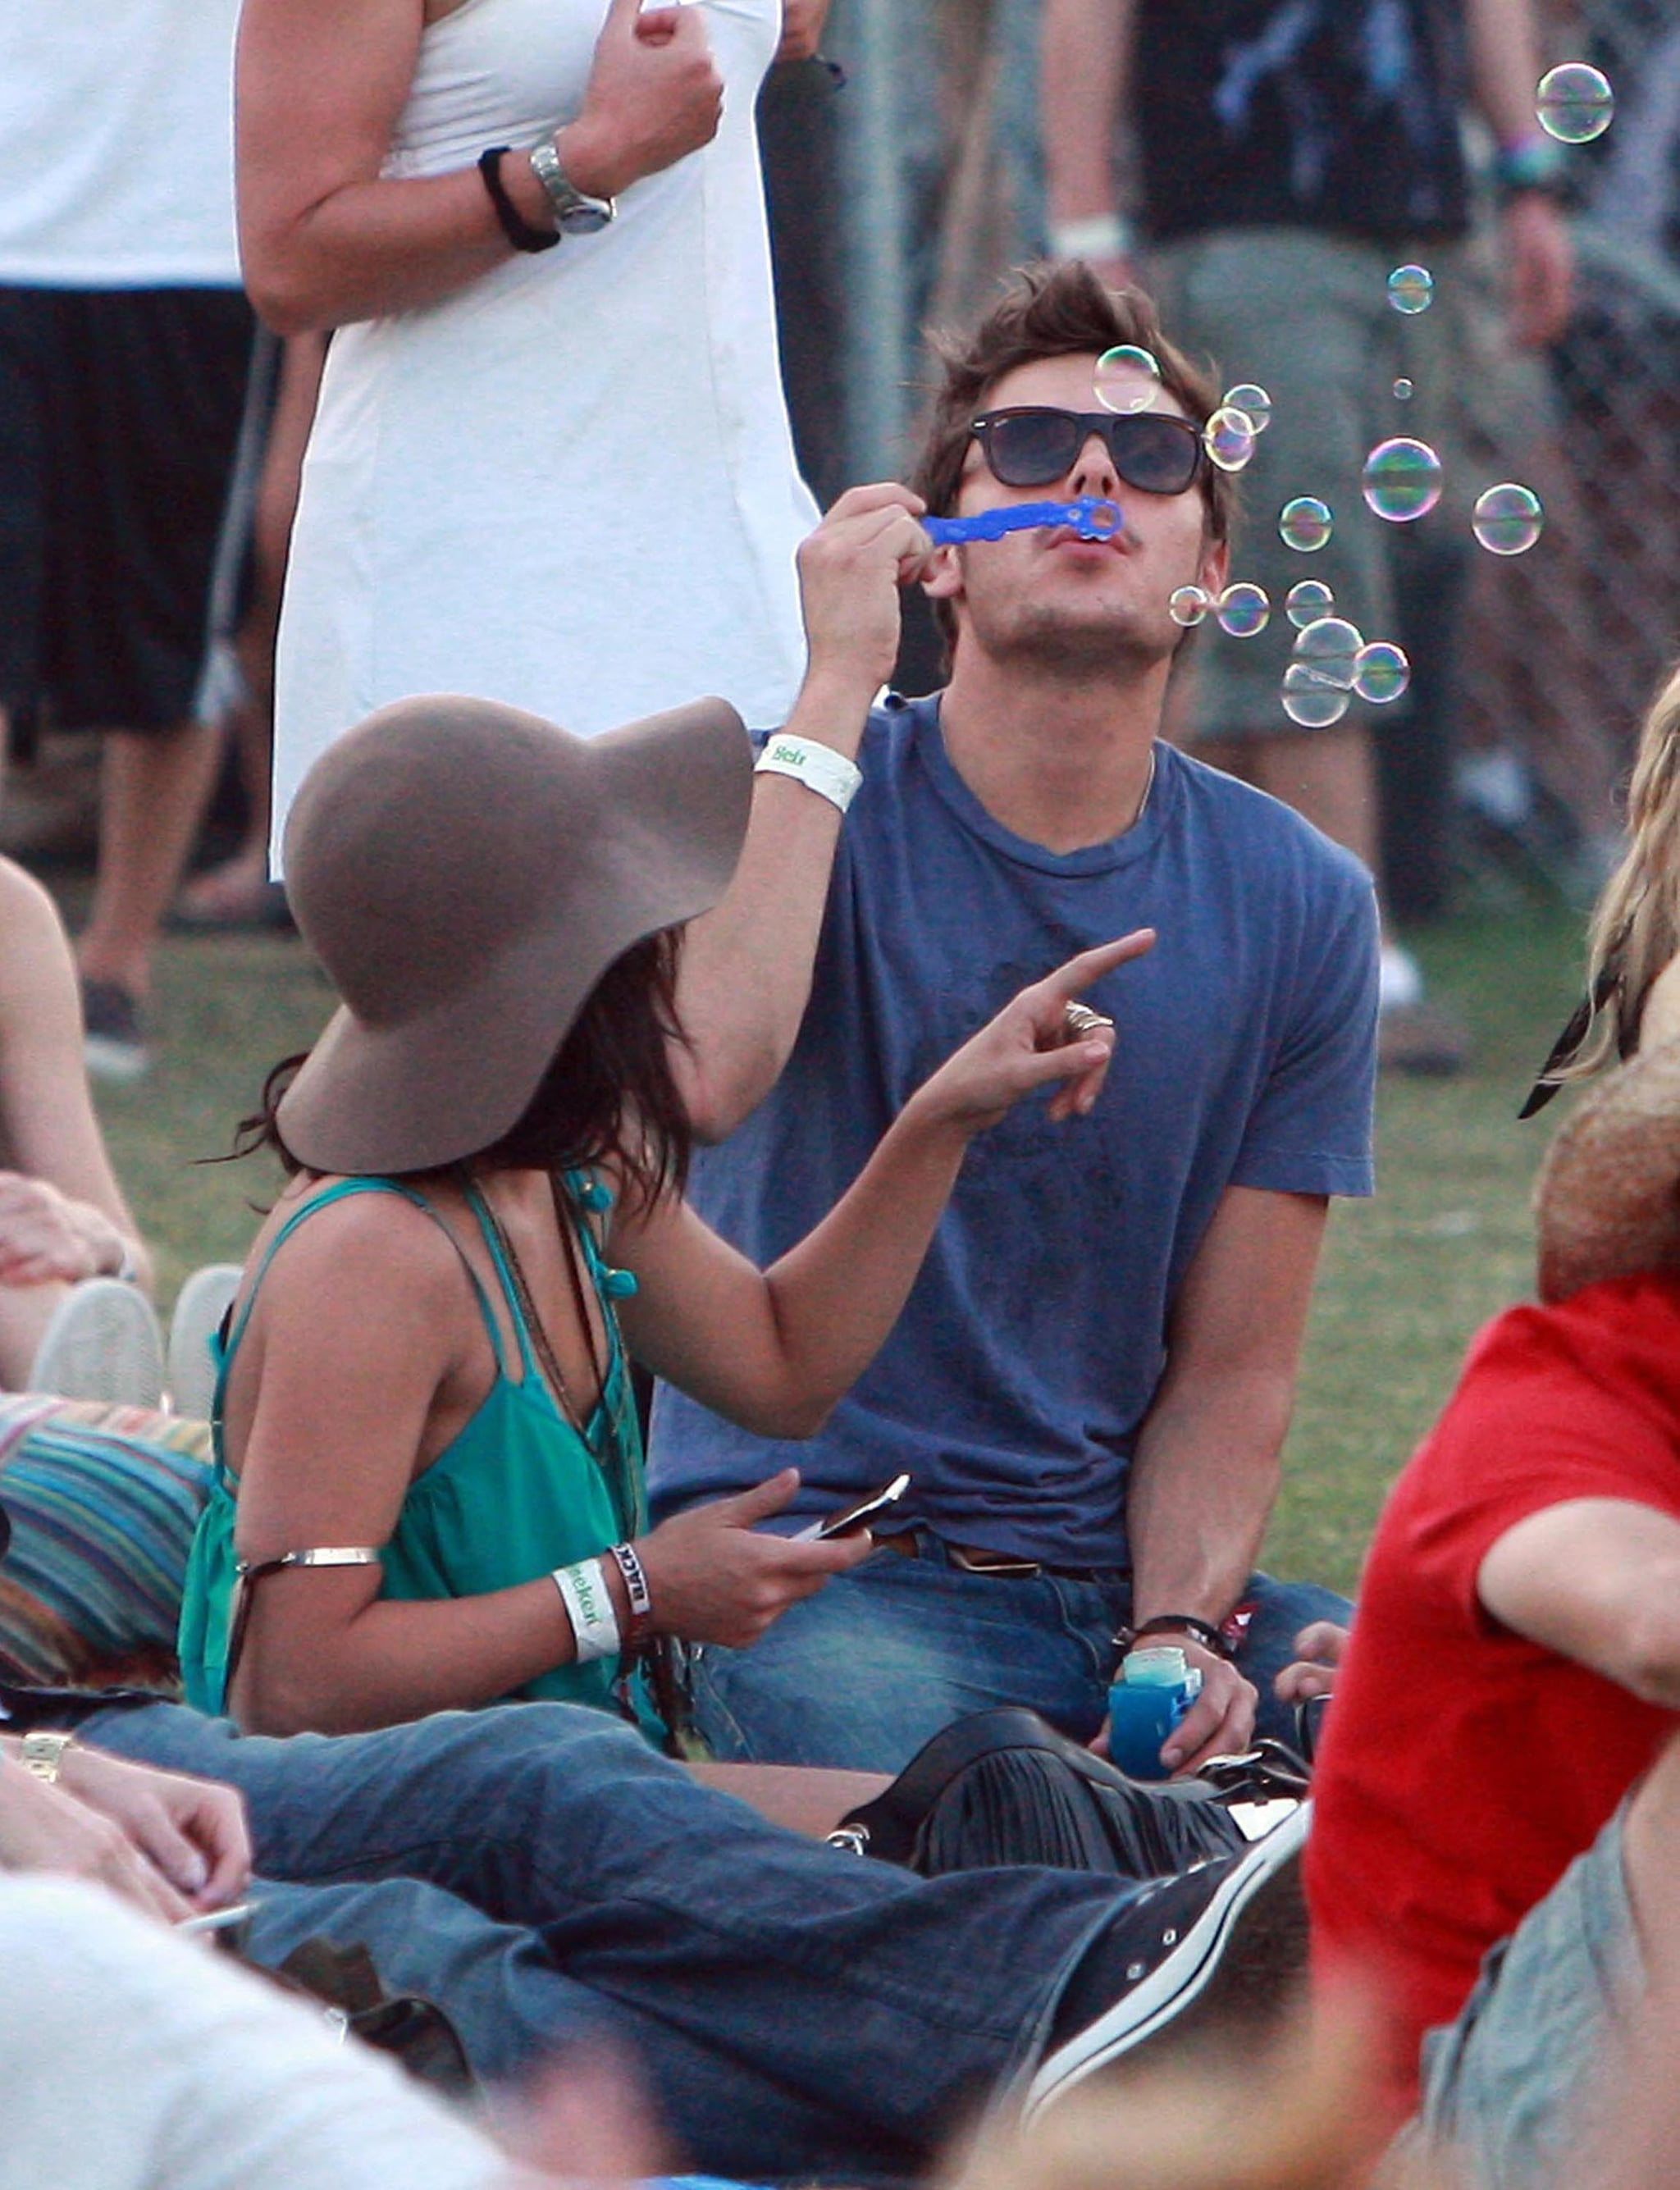 Zac Efron blew bubbles while Vanessa Hudgens watched on in 2010.